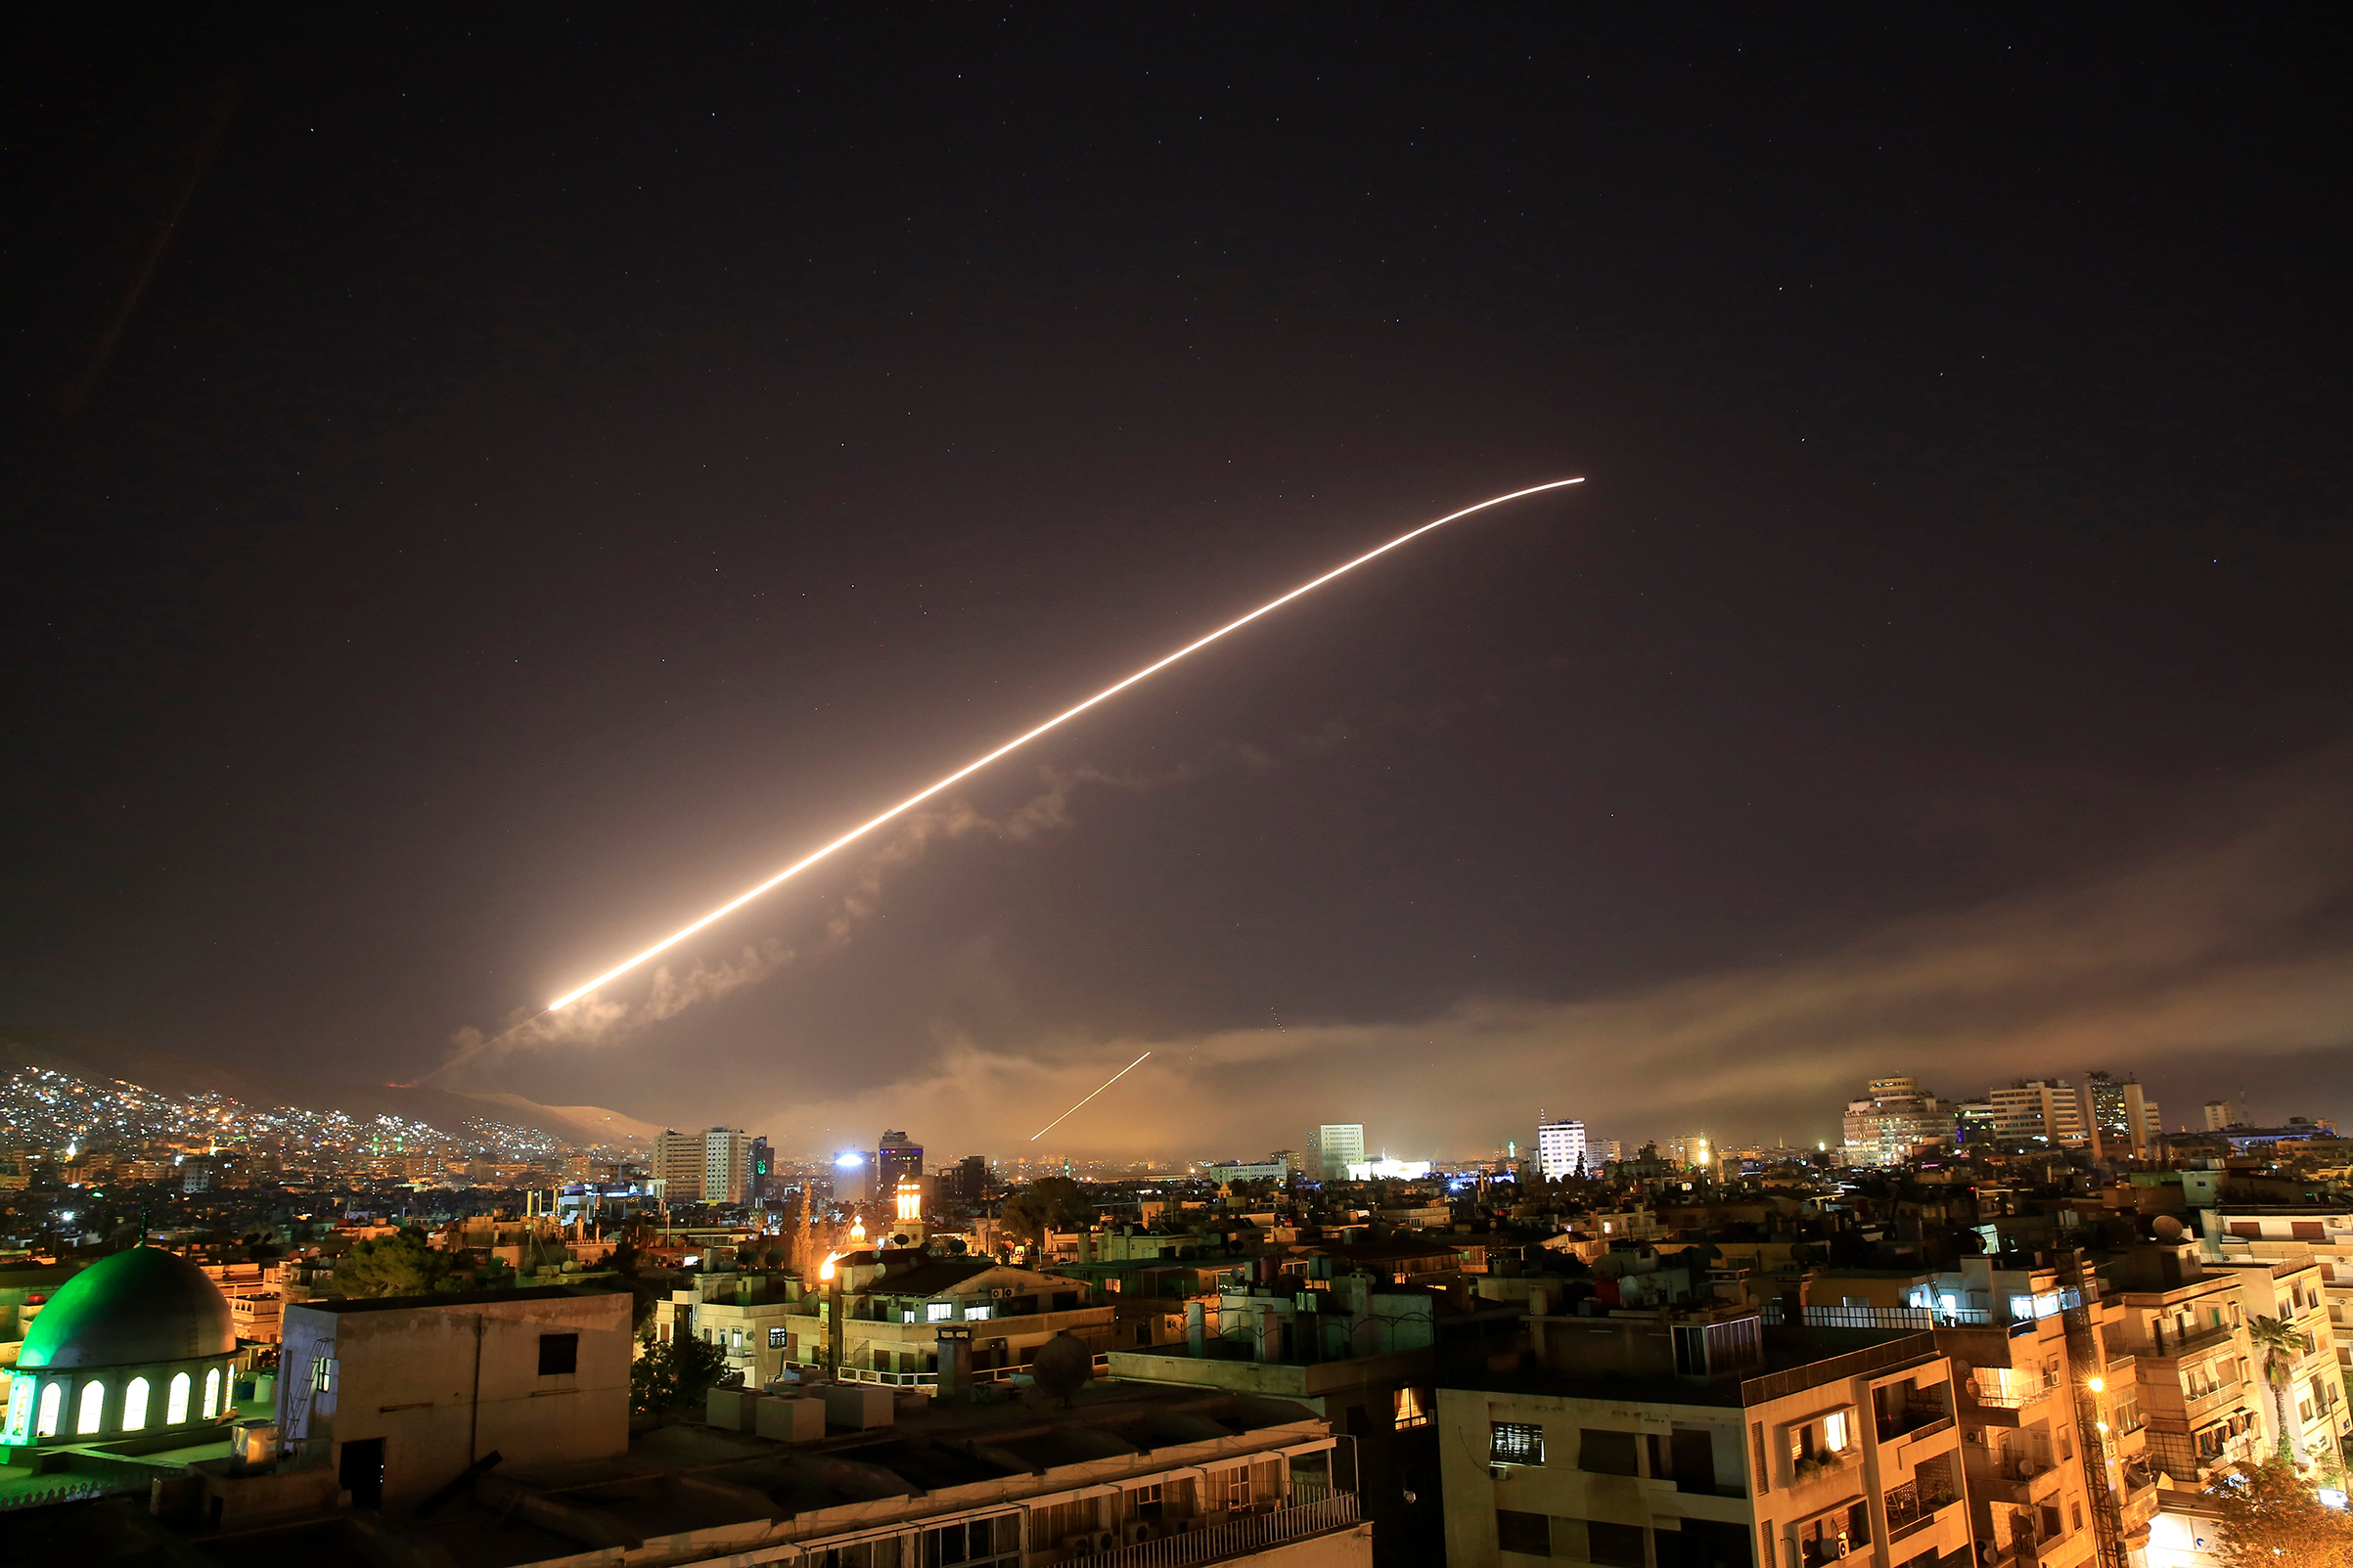 World reacts to strikes on Syria by US, UK and France